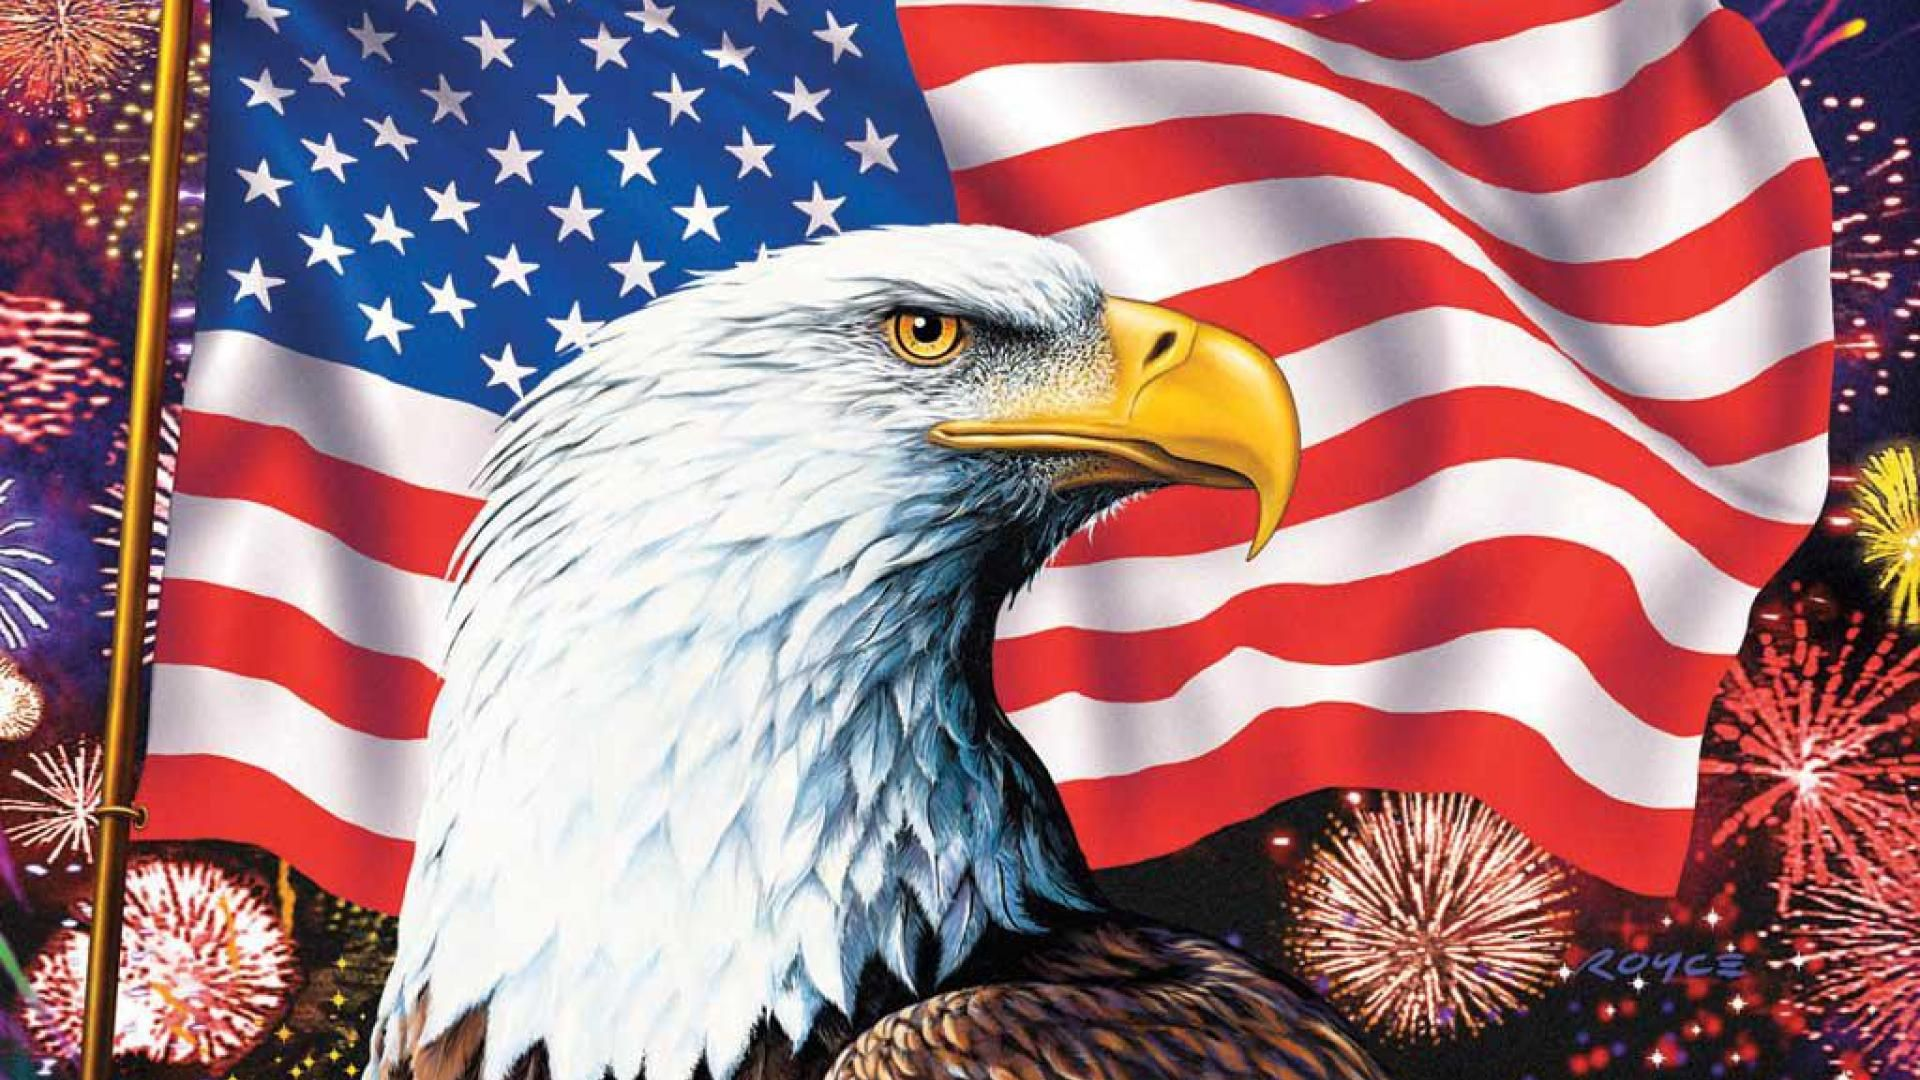 America Wallpapers Top Free America Backgrounds Wallpaperaccess